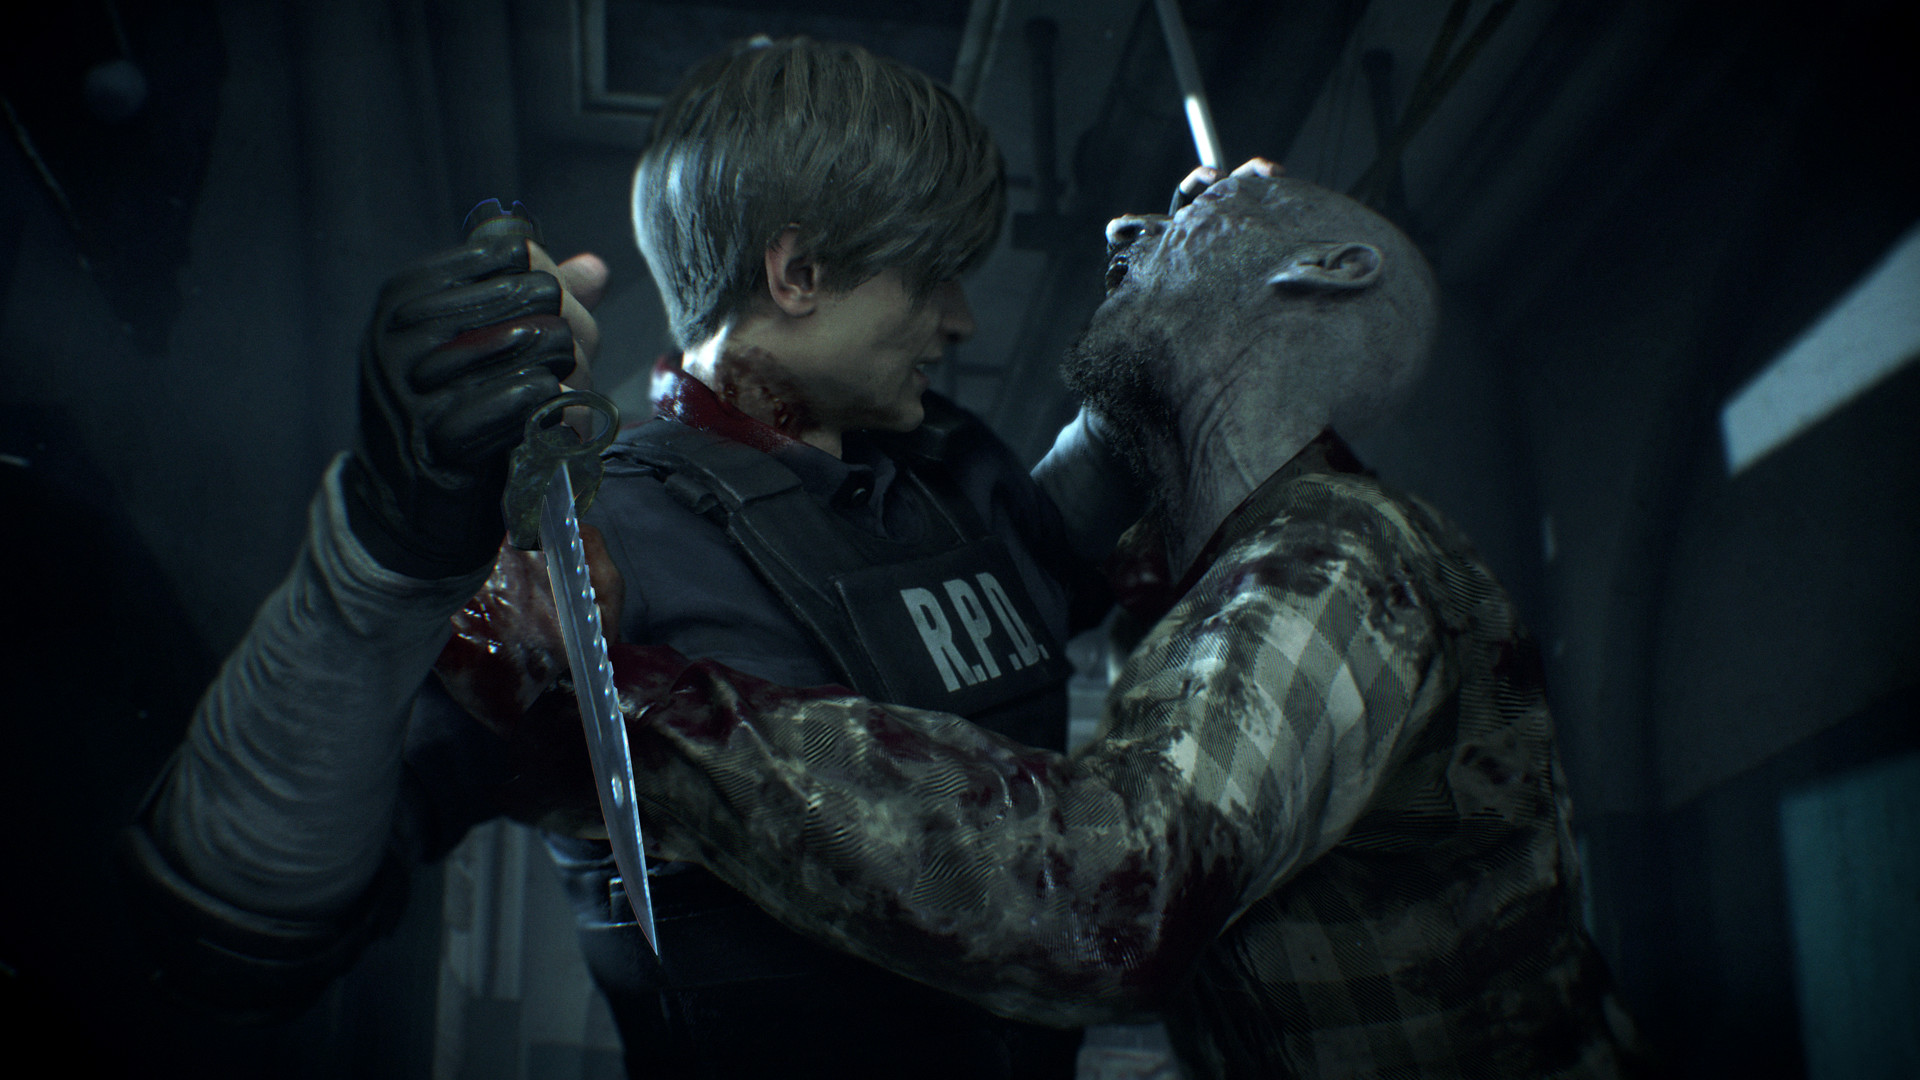 The RESIDENT EVIL 2 R.P.D. Demo is now available as a free download!